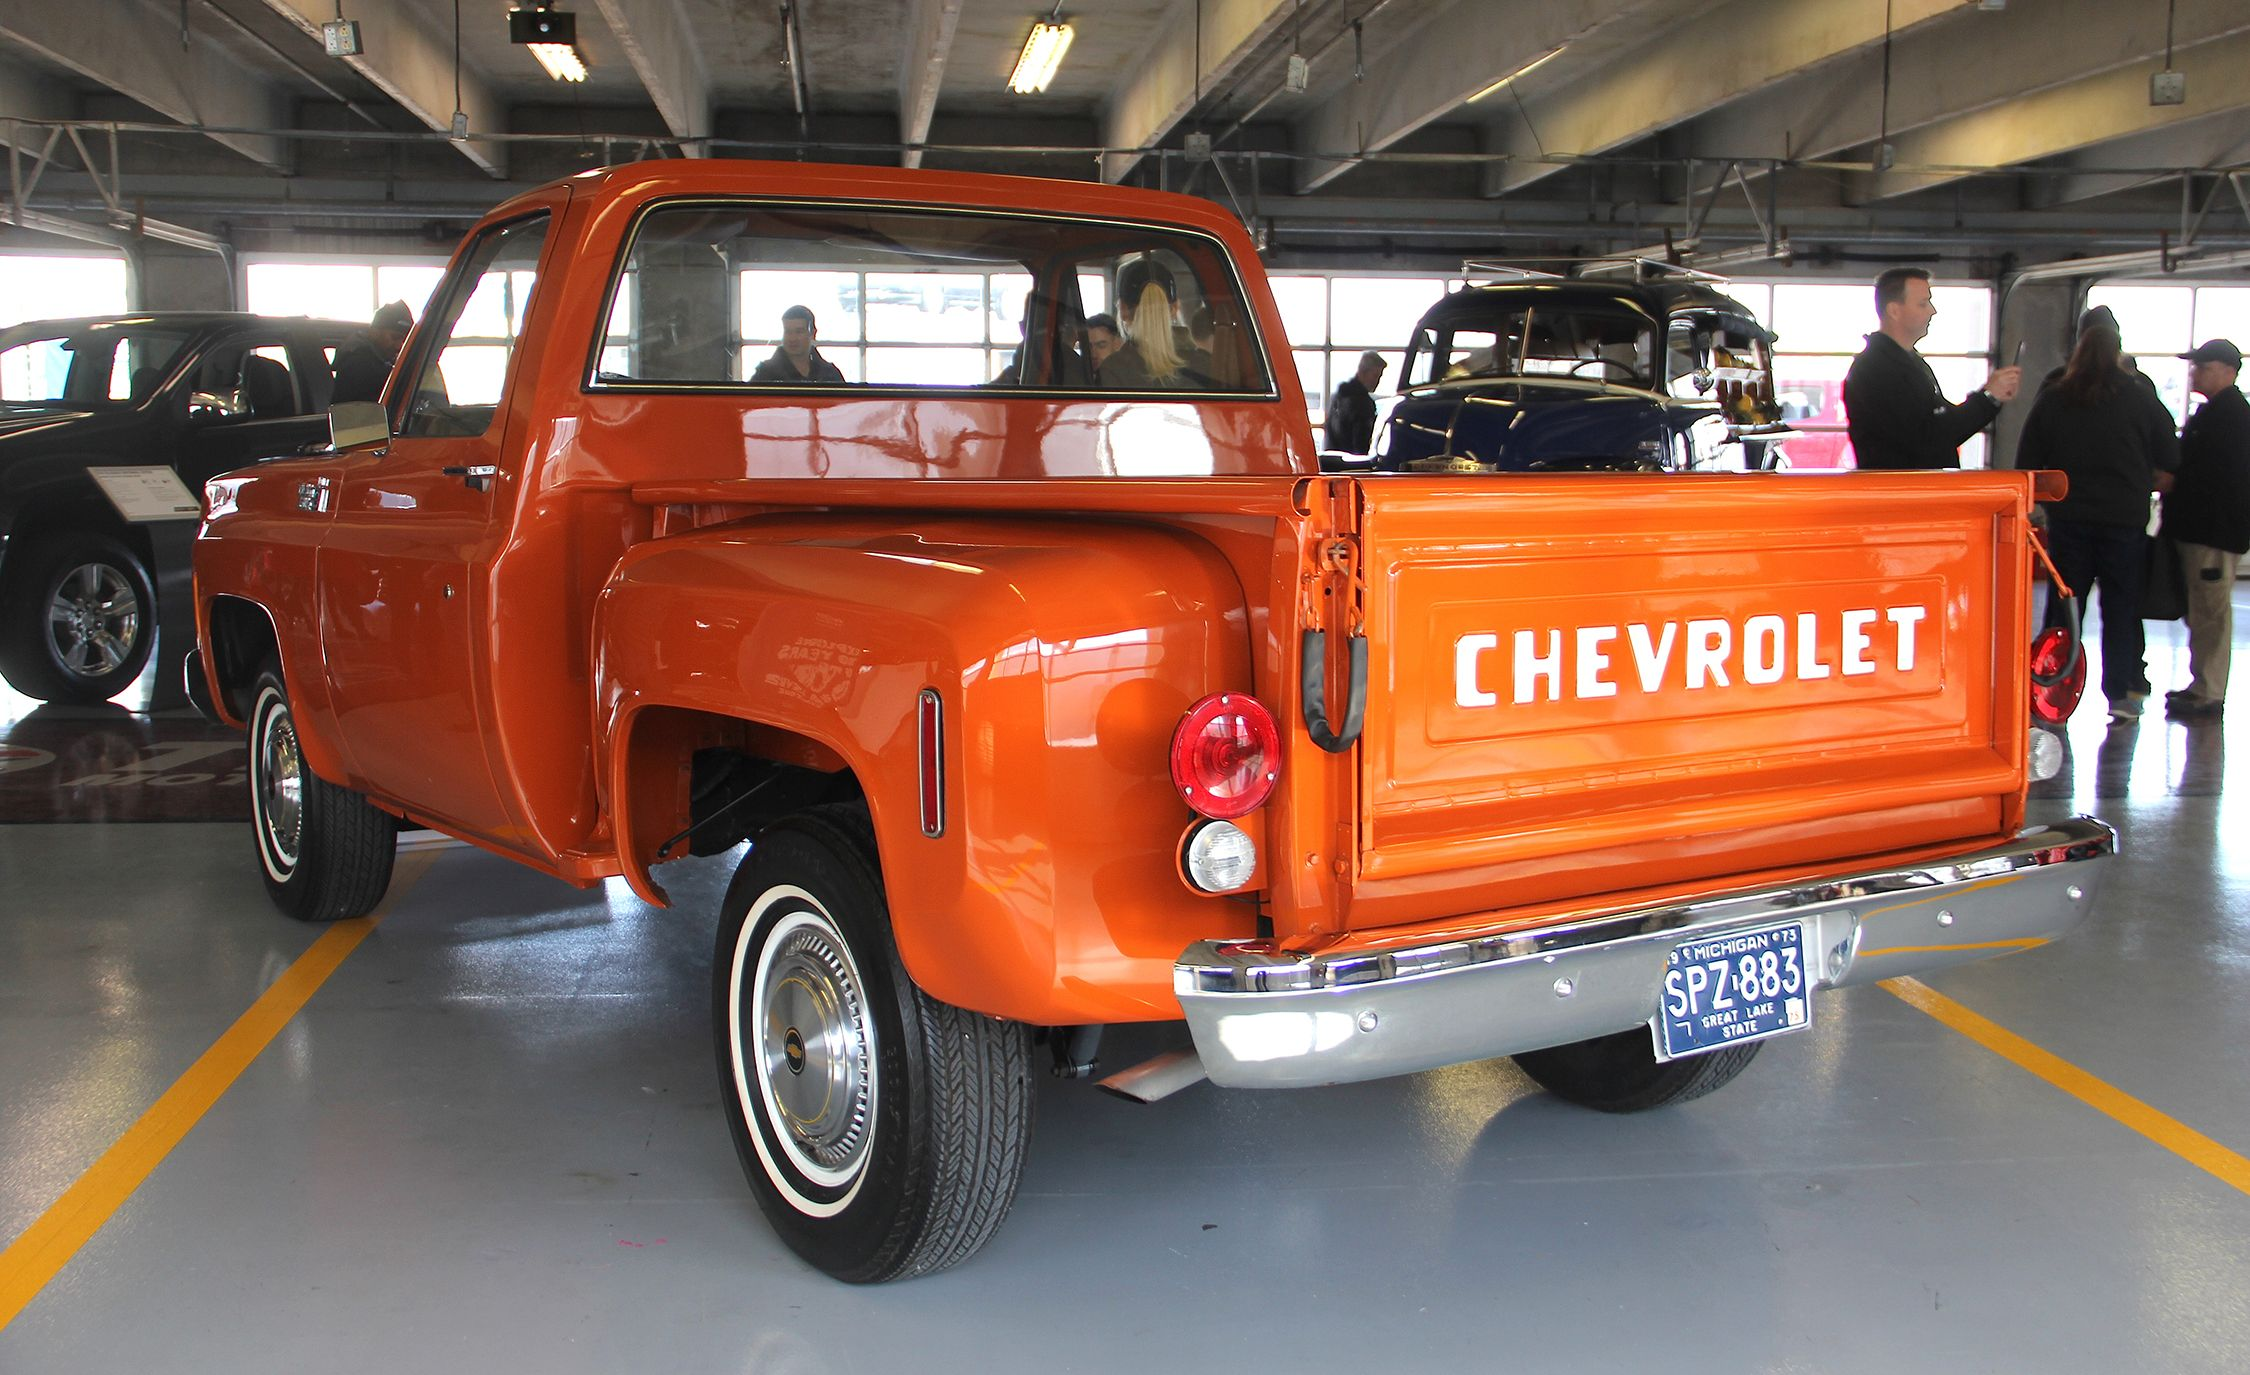 The Coolest Clic Trucks That Chevrolet Brought To Its Truck